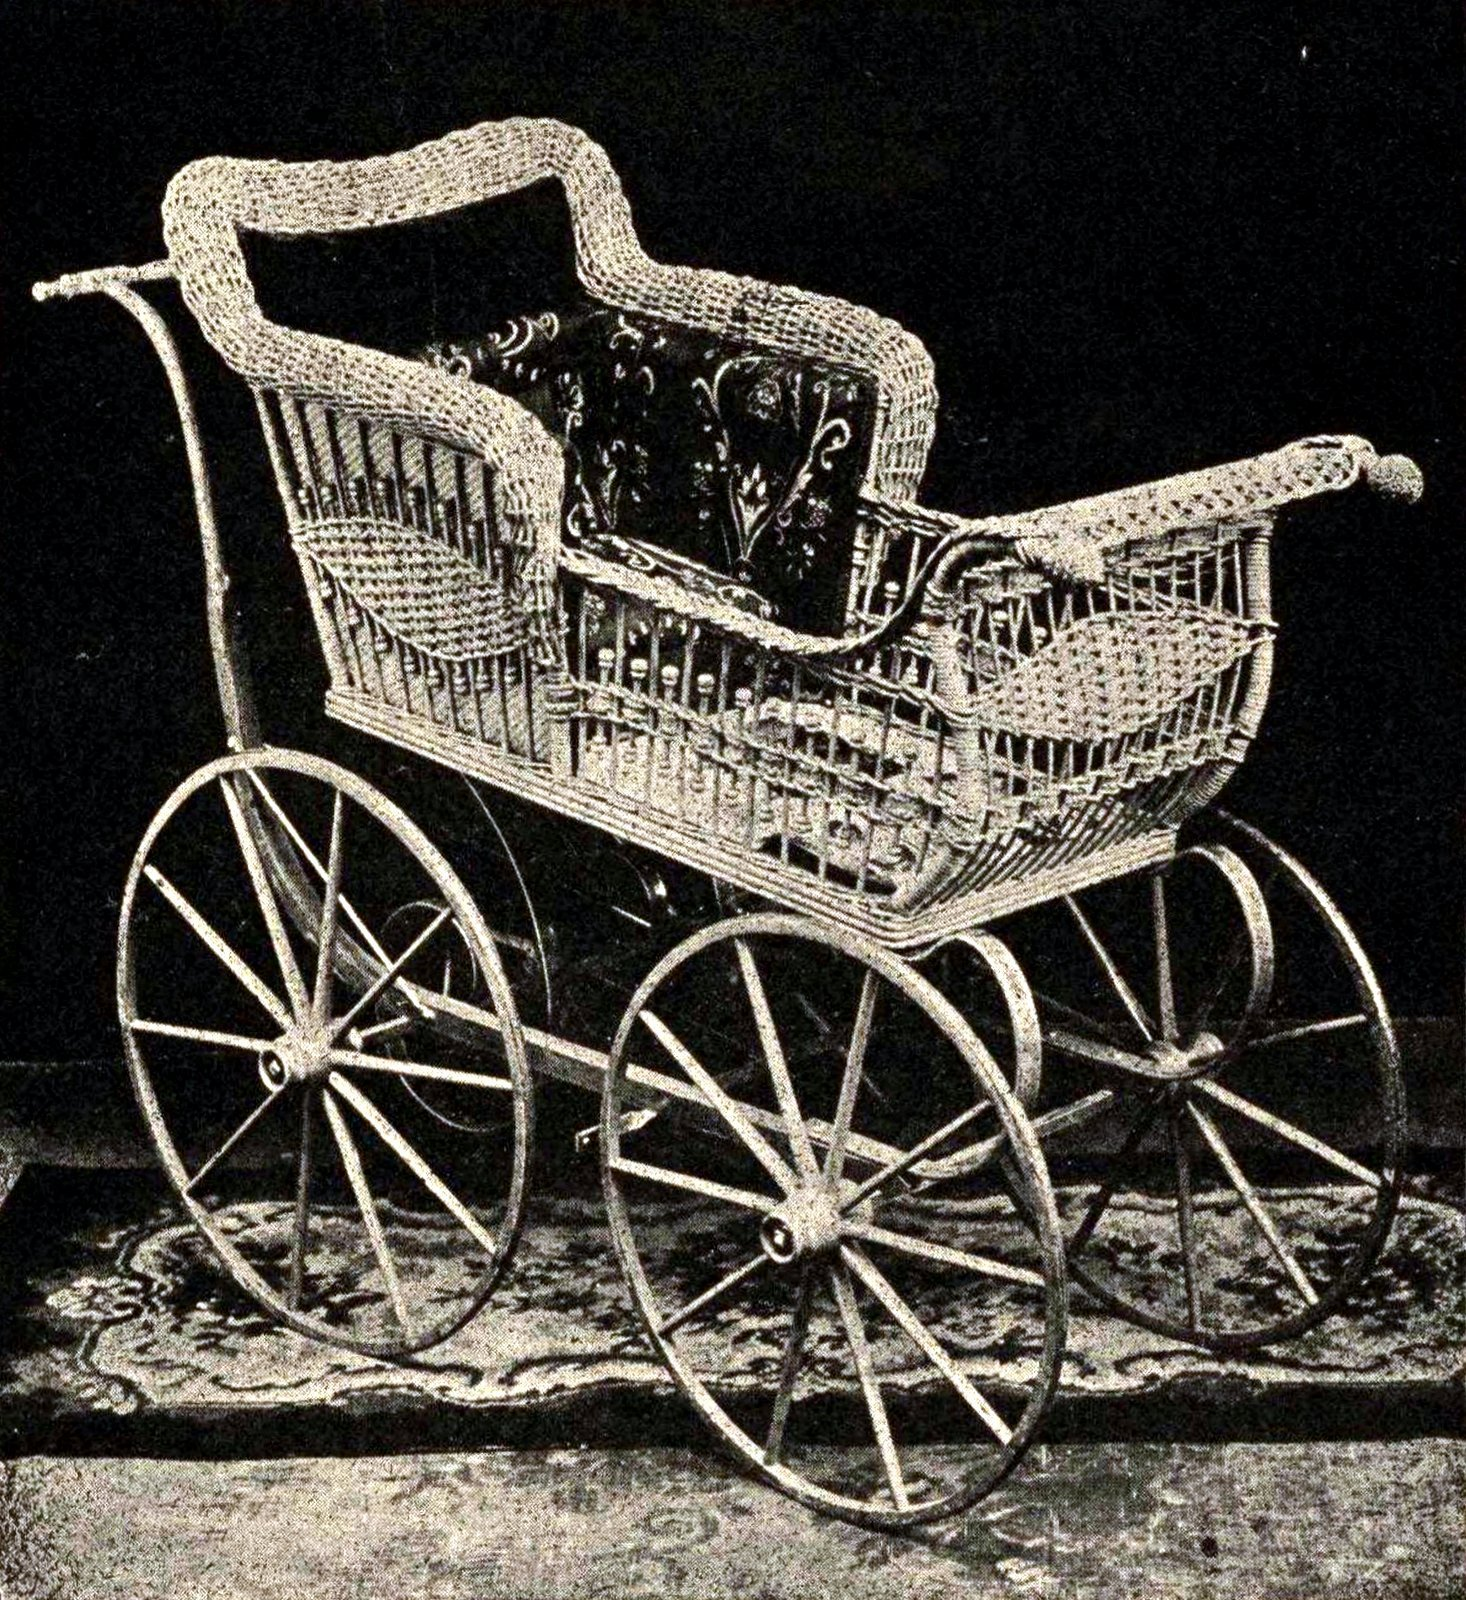 Antique wicker baby carriage from 1900